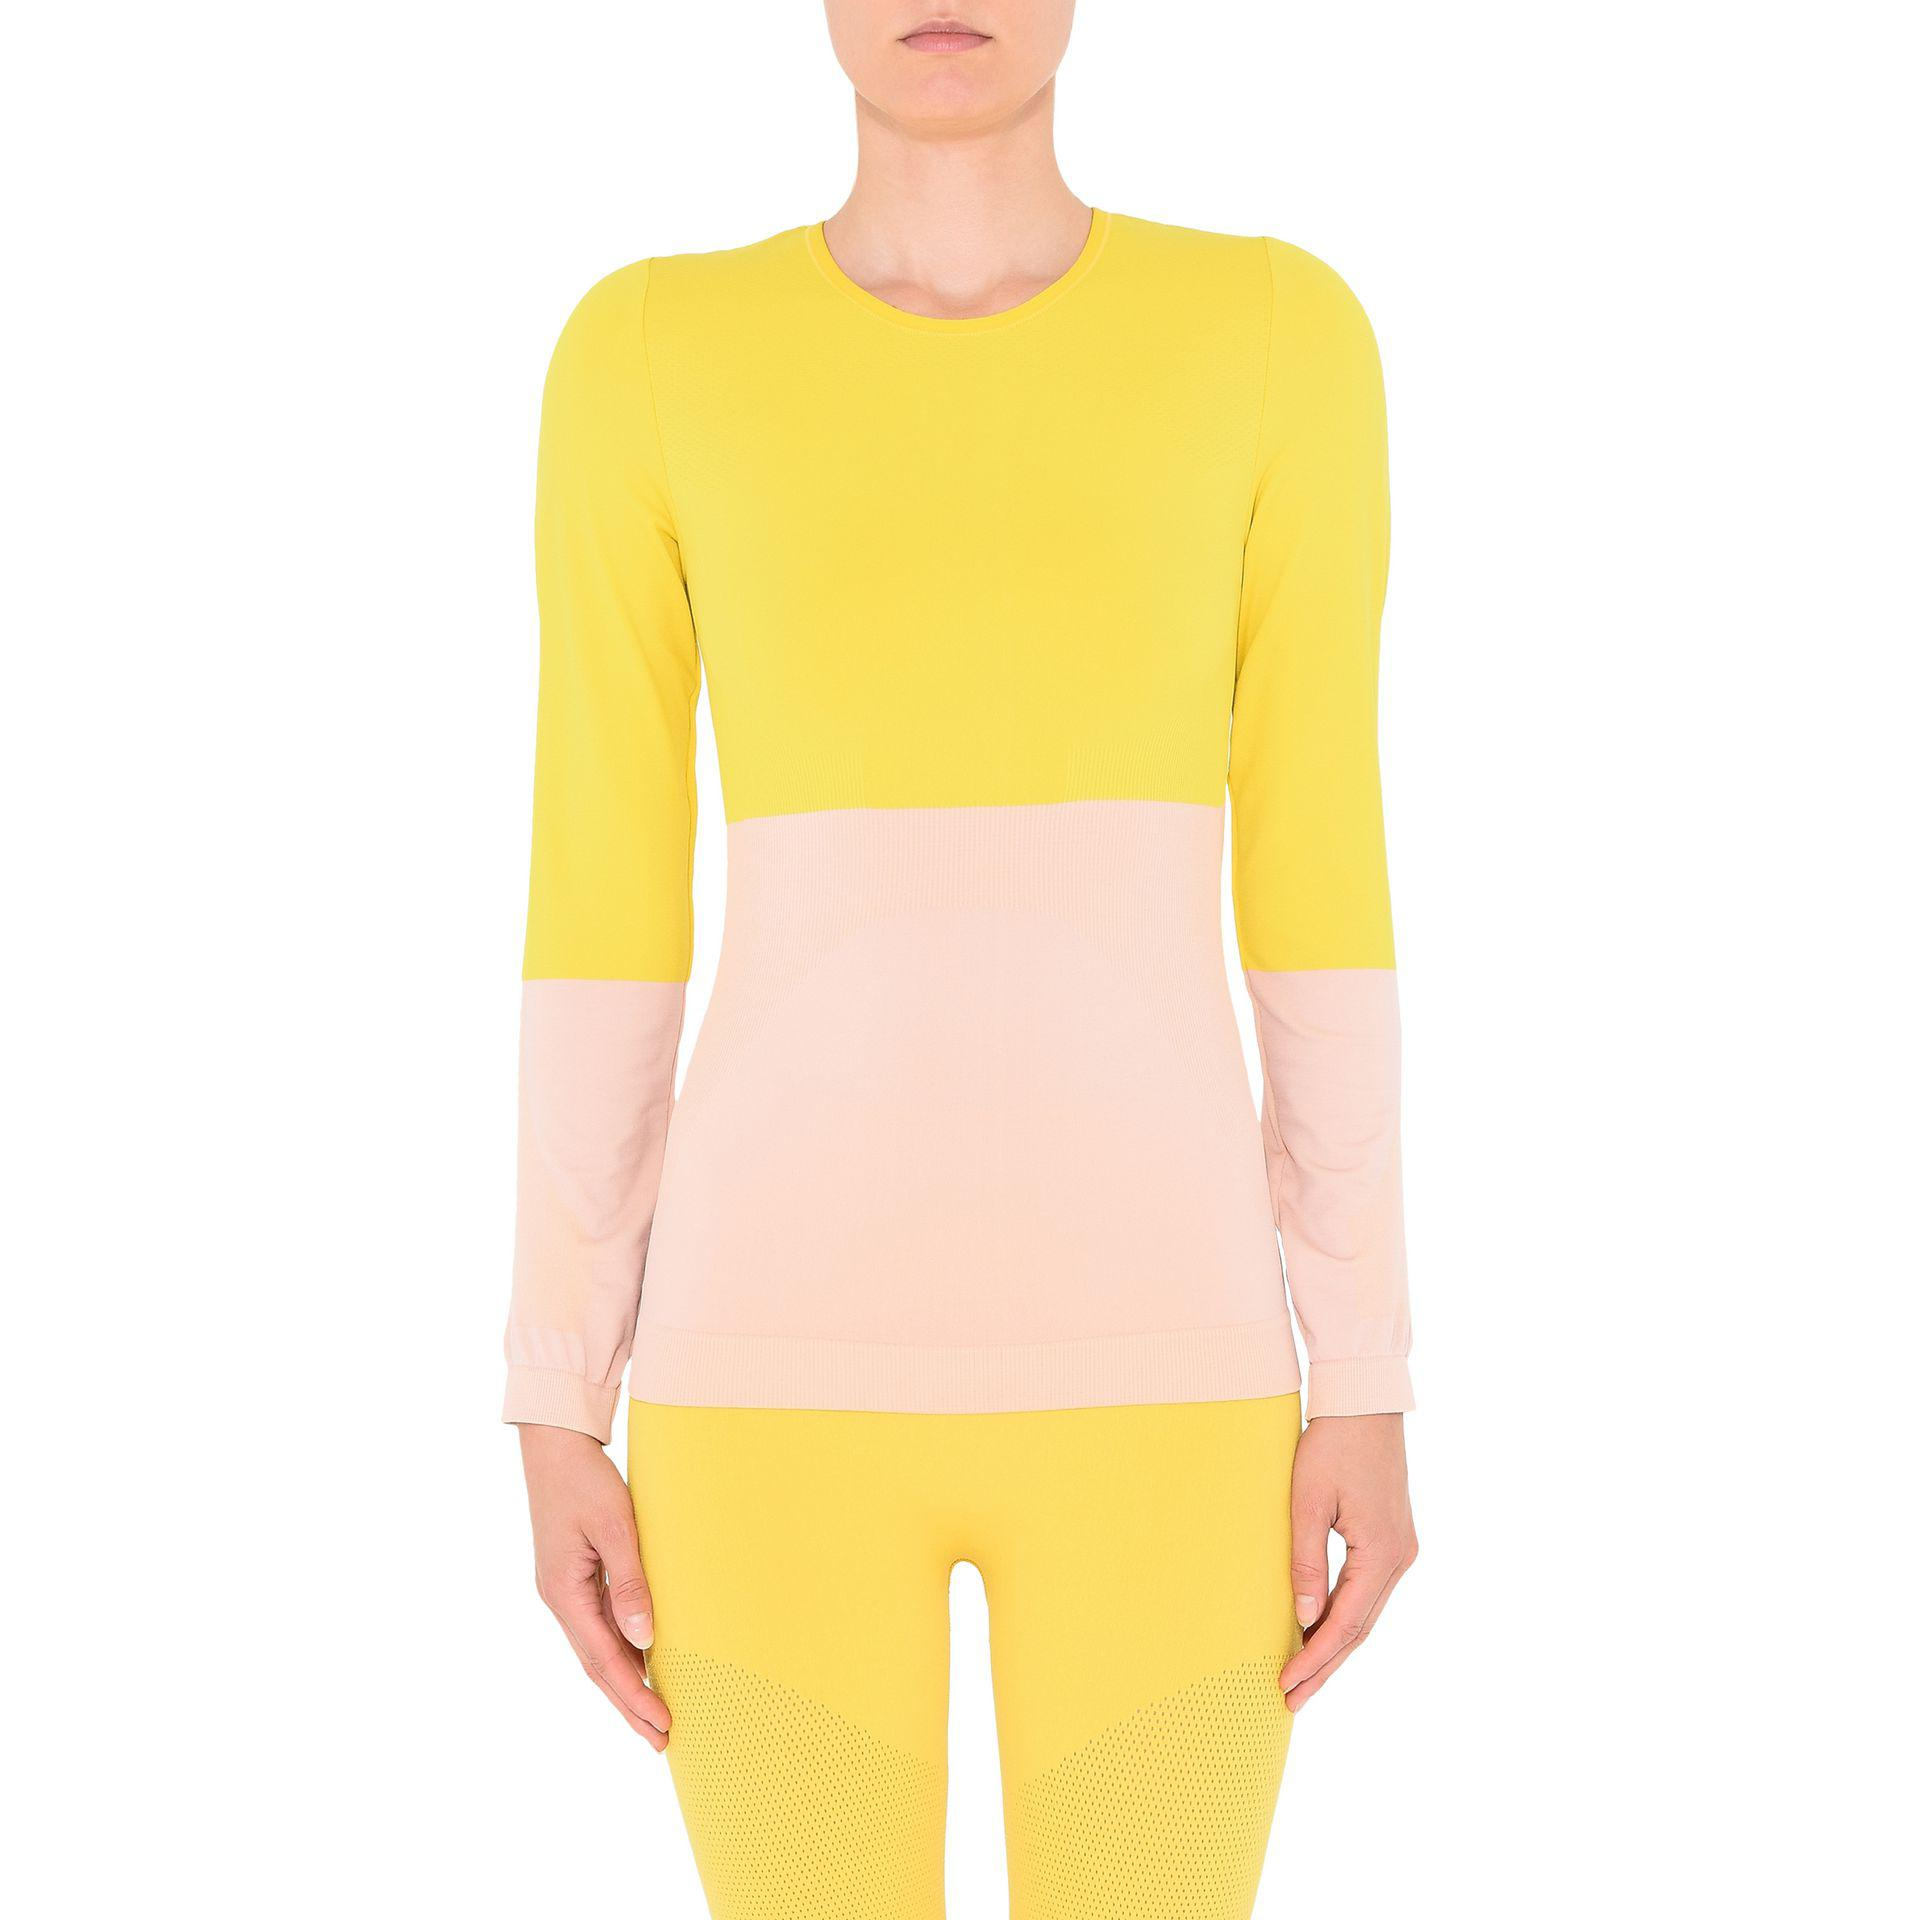 Adidas By Stella Mccartney Seamless Yoga Top In Yellow